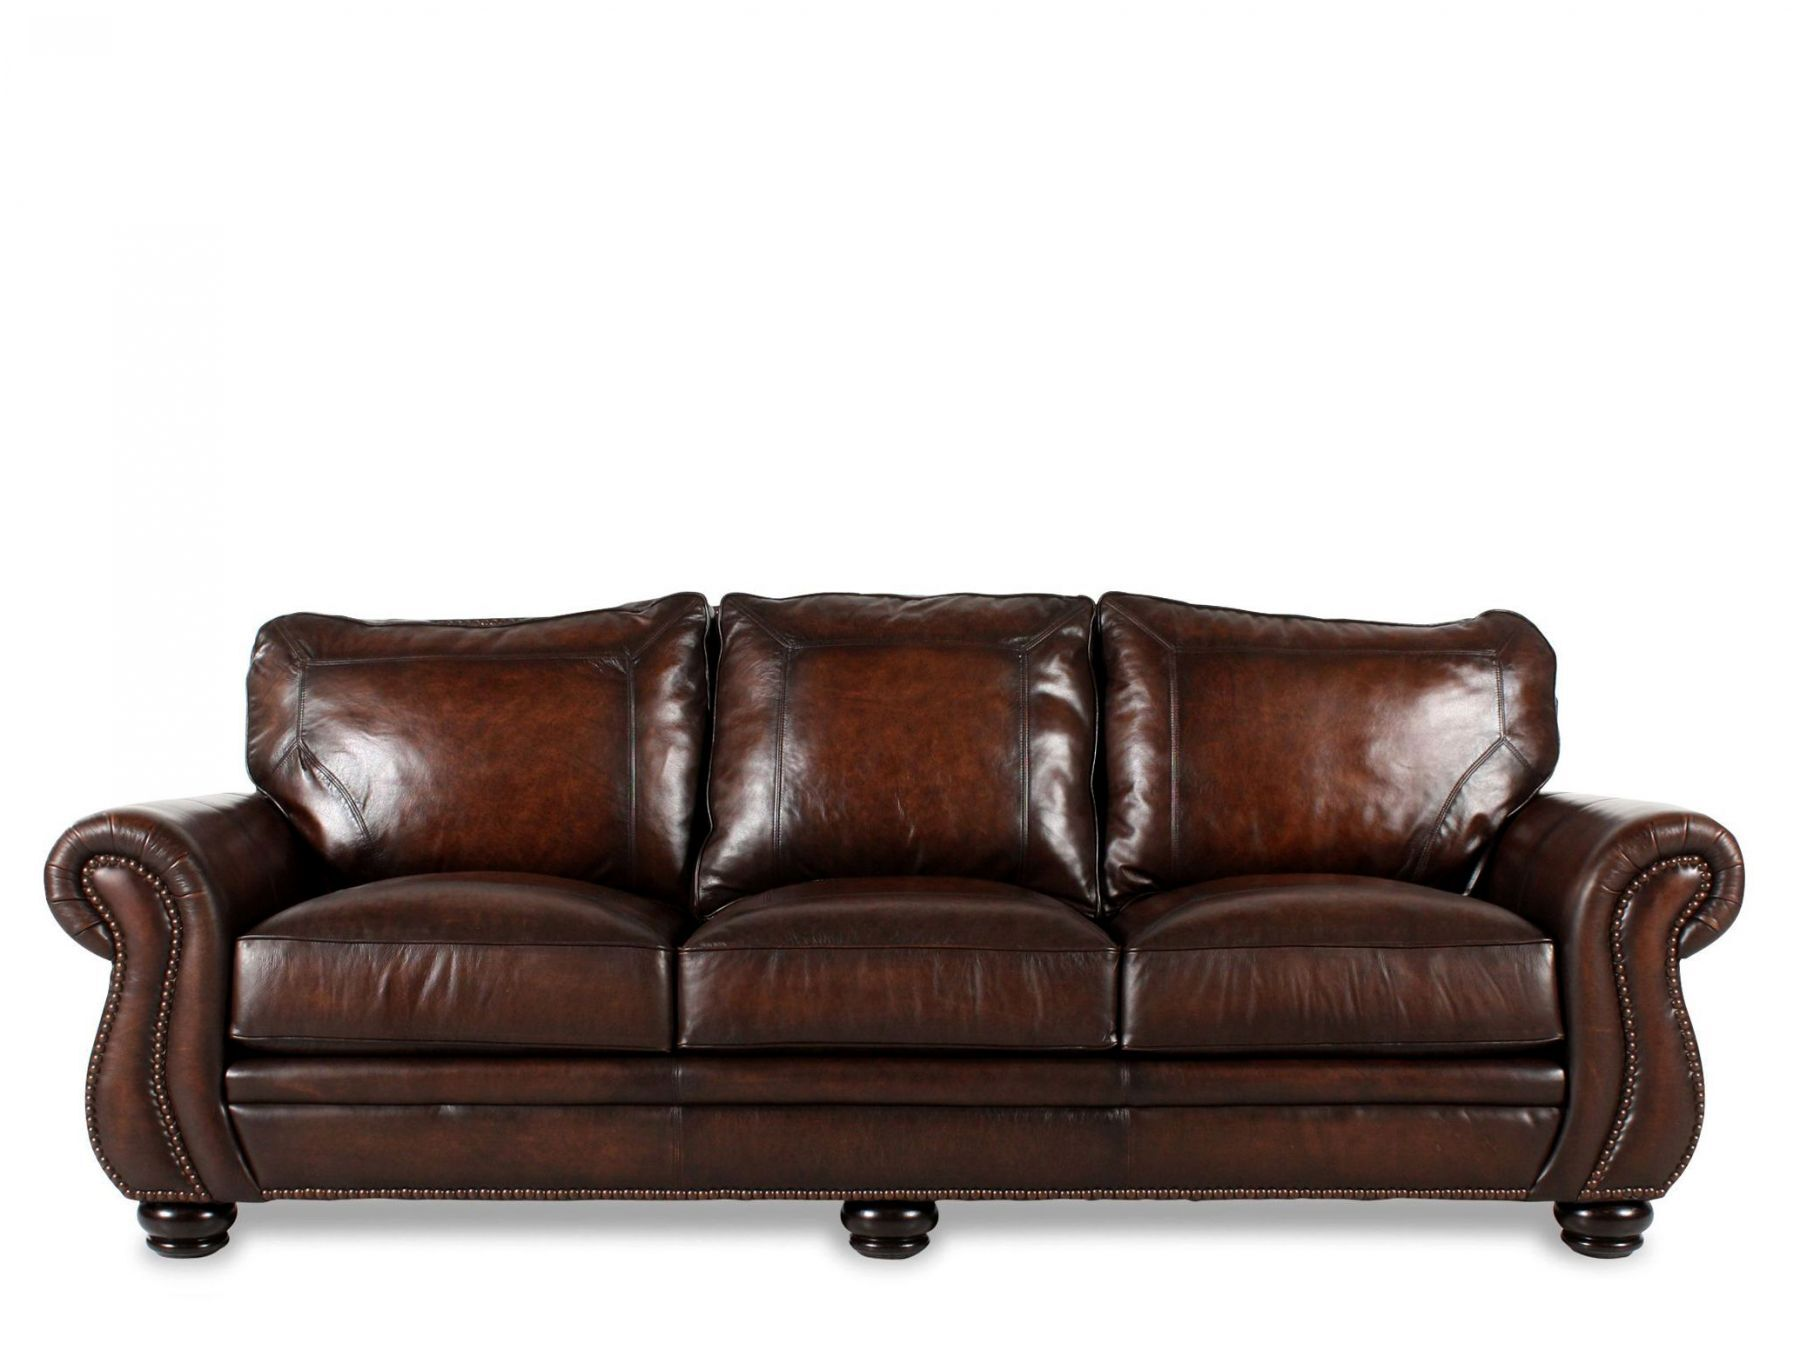 bernhardt sofa leather and fabric italian designs photos mathis brothers